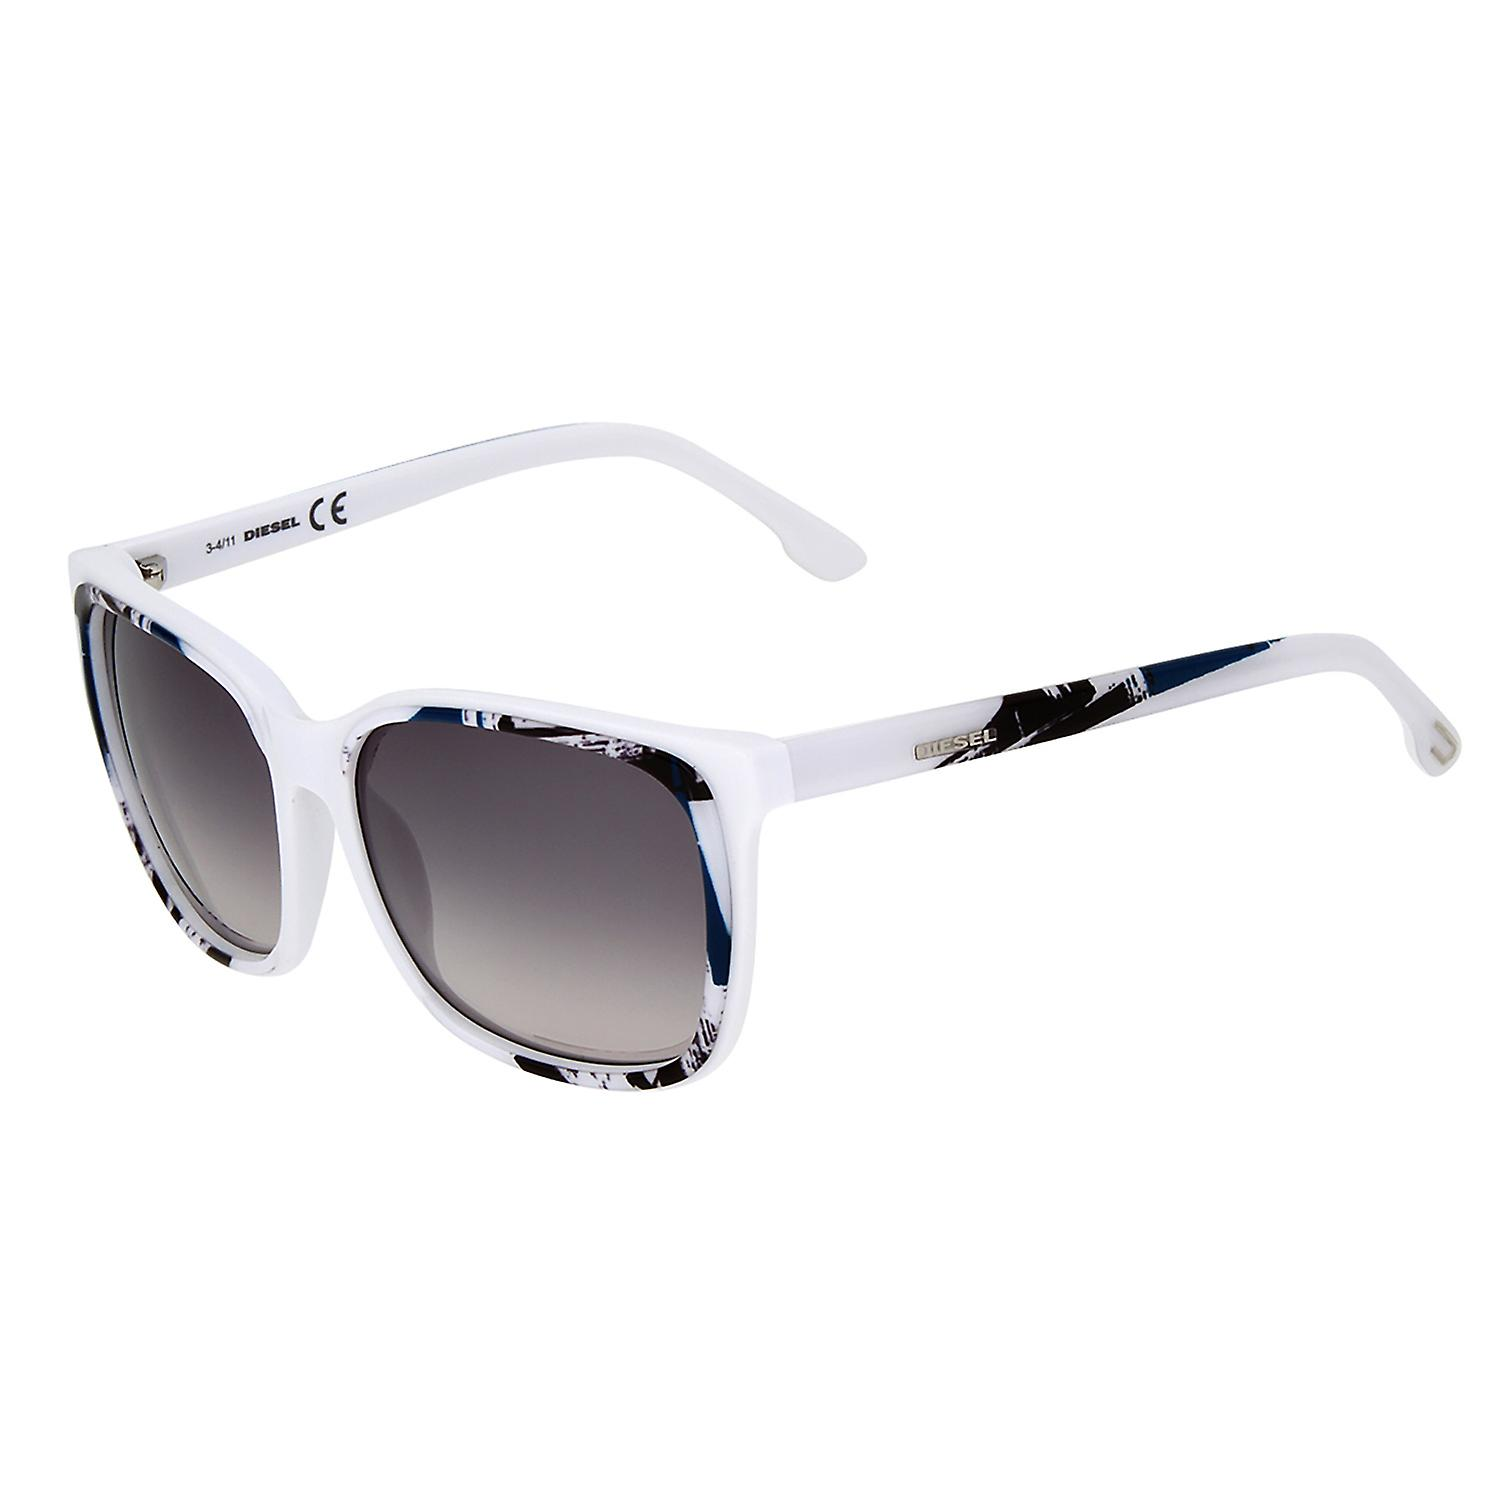 Diesel ladies sunglasses white